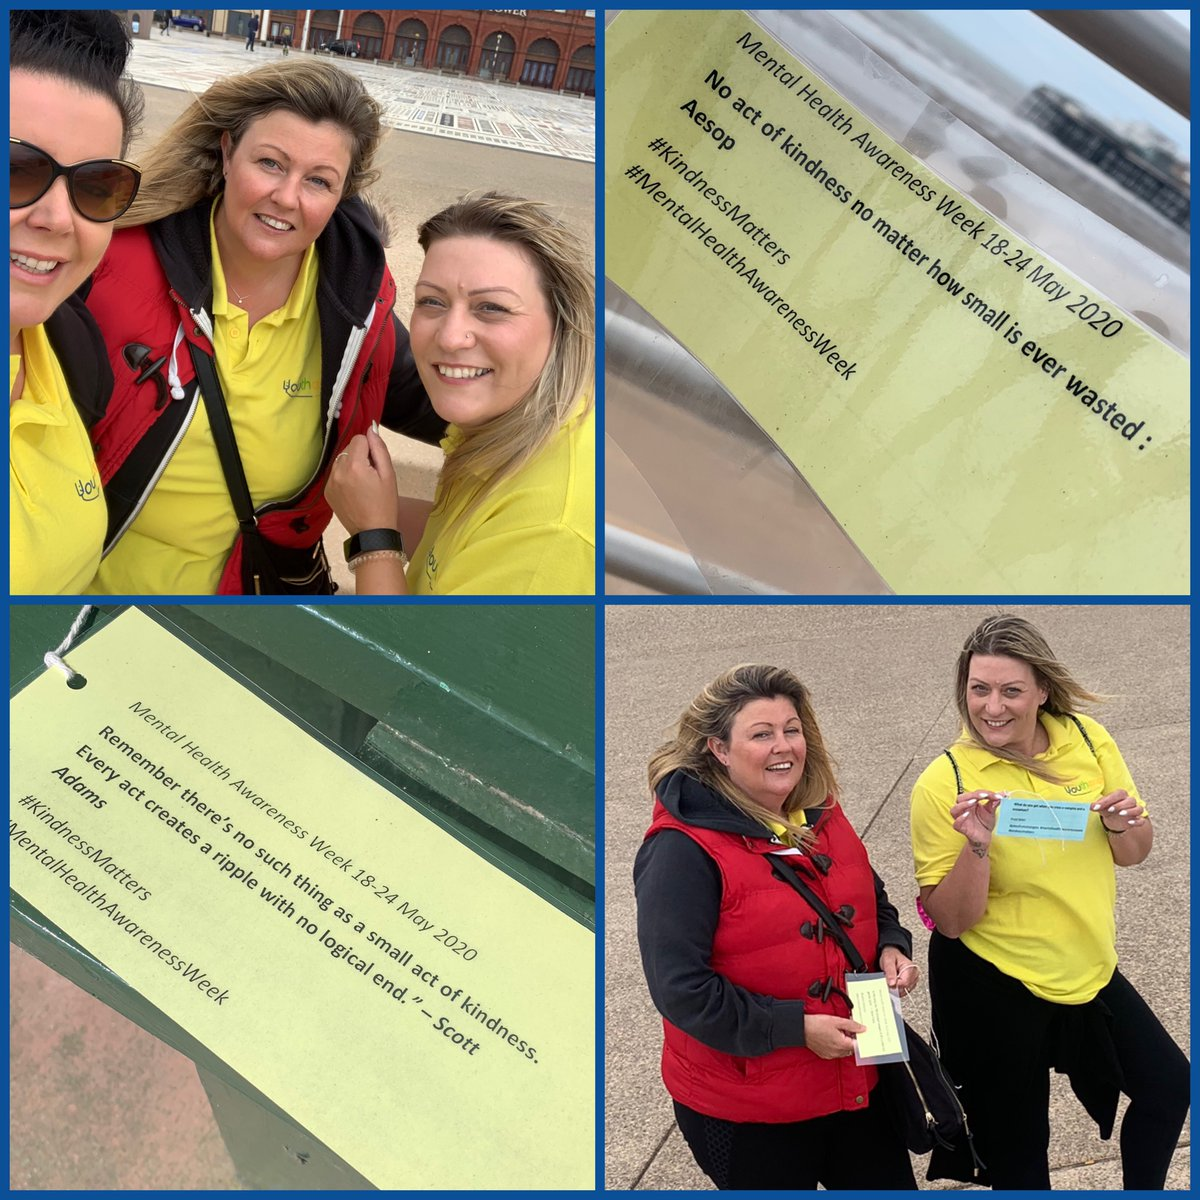 Just a little update what we at Youtherapy have been up to over mental health awareness week we have been across Blackpool and the FYLDE coast this week, sharing Notes to strangers #kindnessmatters #mentalhealthawarenessweek #blackpoolyoungpeopleservices